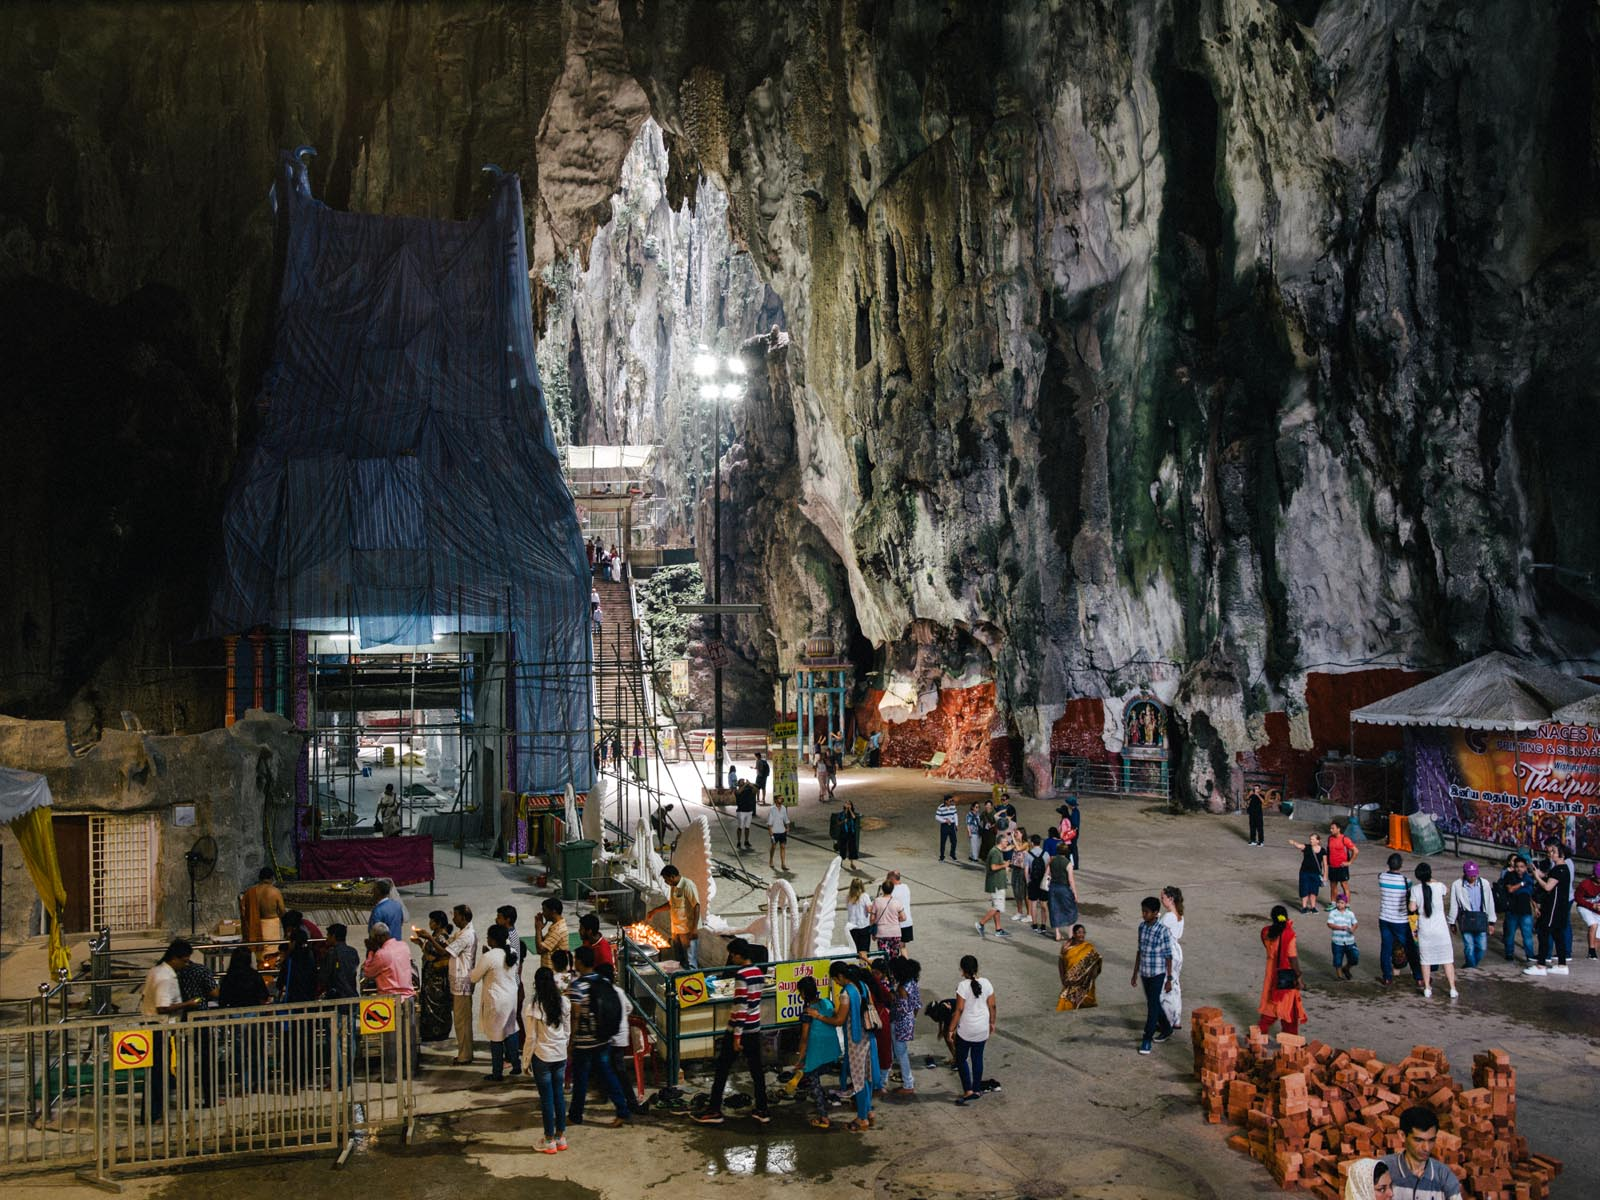 The Batu Caves were pretty much a construction area which added to the slight disappointment when we visited.  All photography by    Joris Hermans.